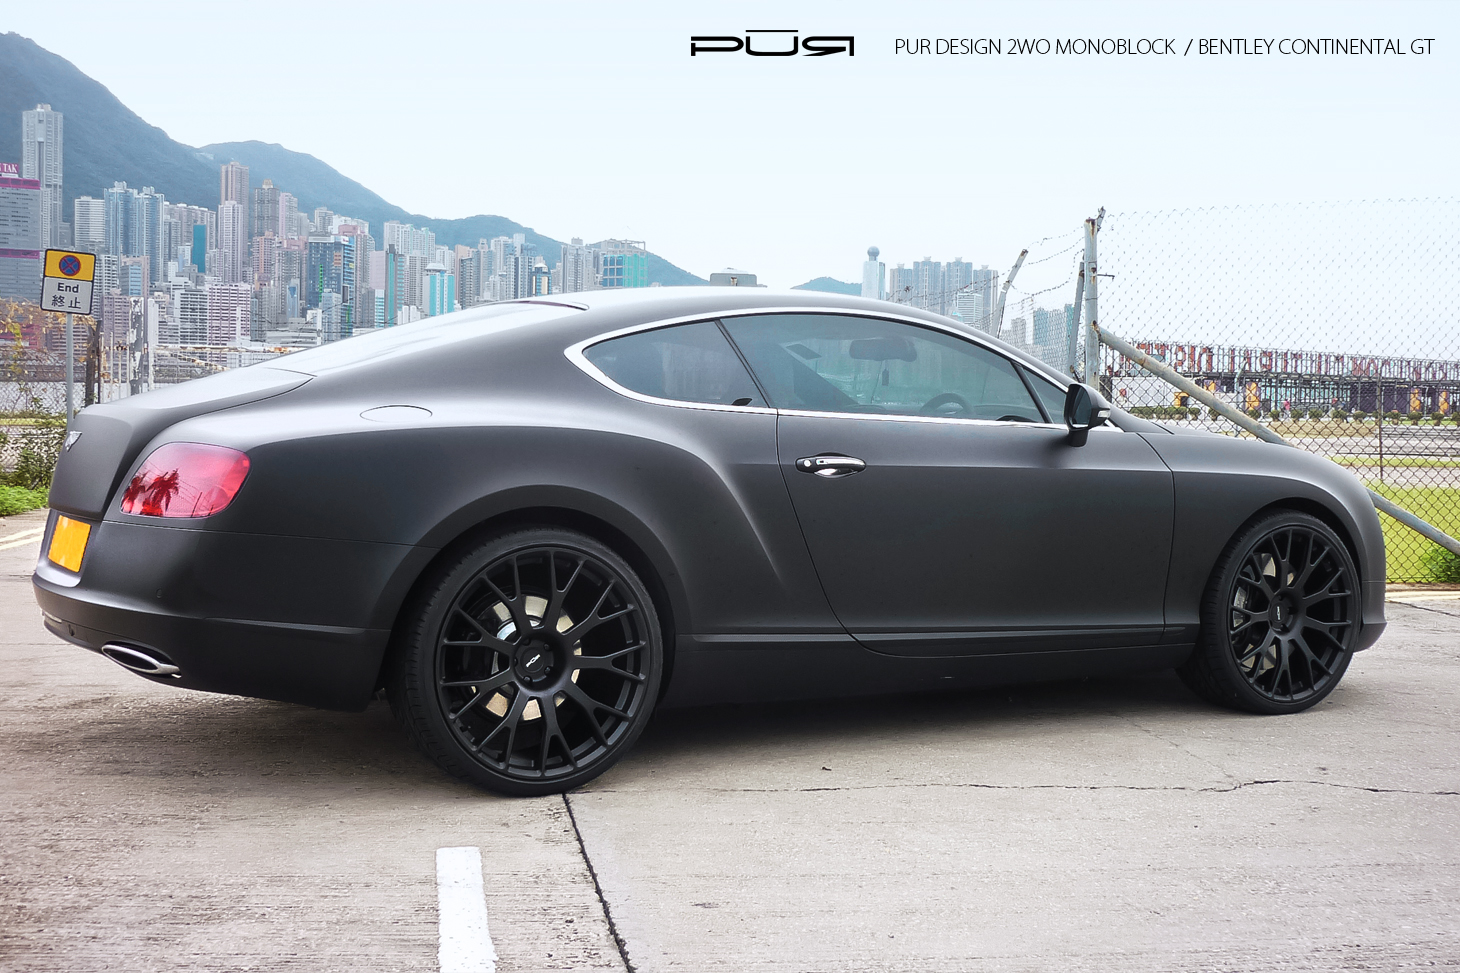 Bentley Continental Gt In Matte Black Rides On Pur Wheels